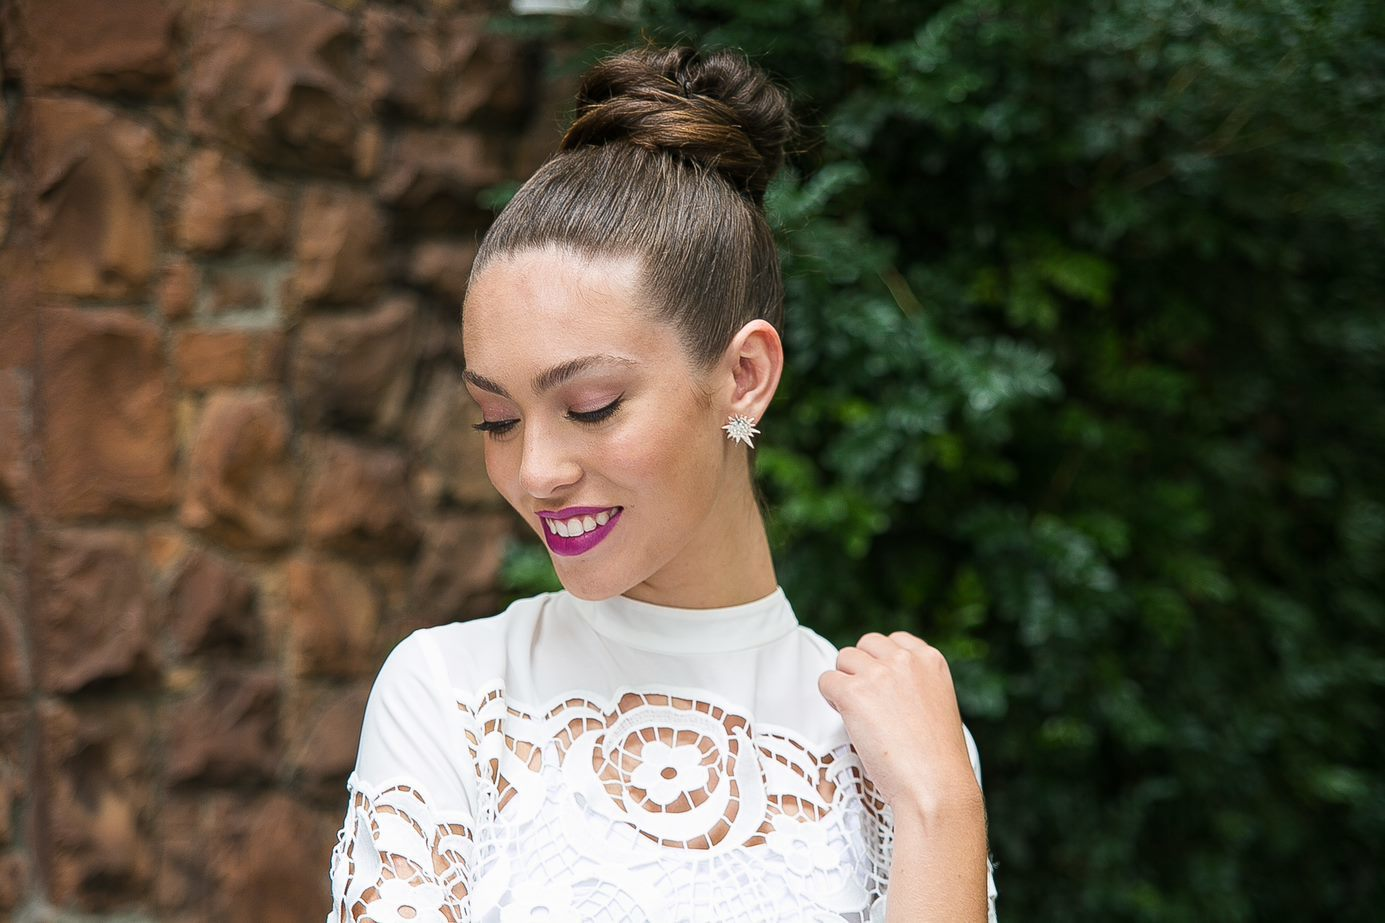 Wedding updos for long hair: Front facing shot of a bride with long honey brown hair styled into a sleek donut bun, wearing white dress and posing outside.